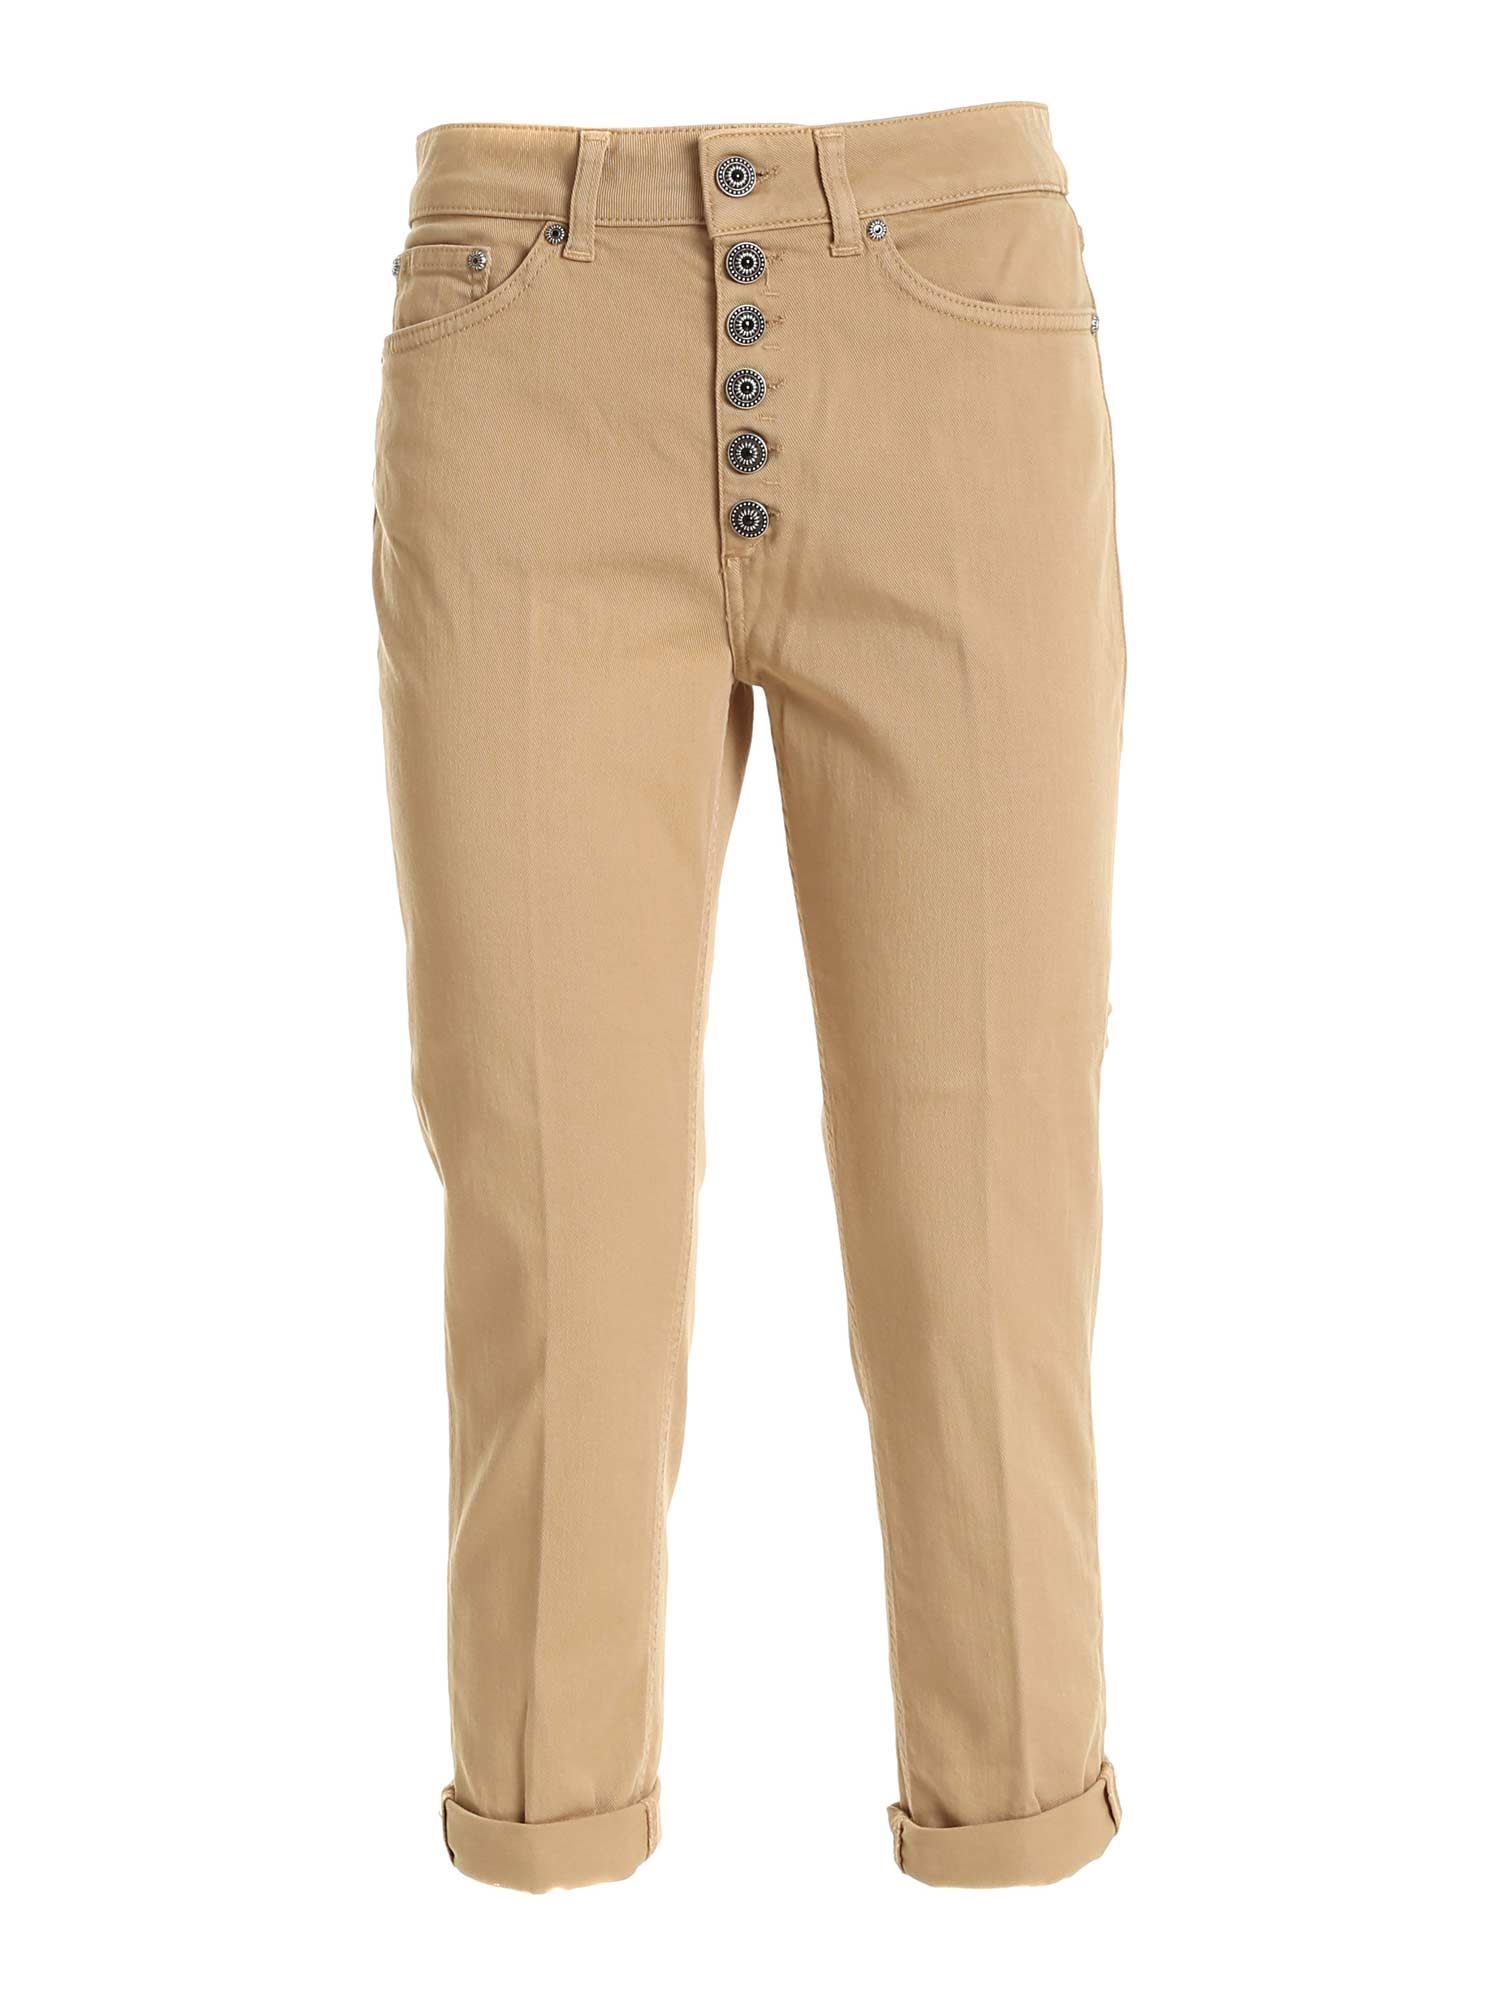 Dondup KOONS PANTS IN BEIGE